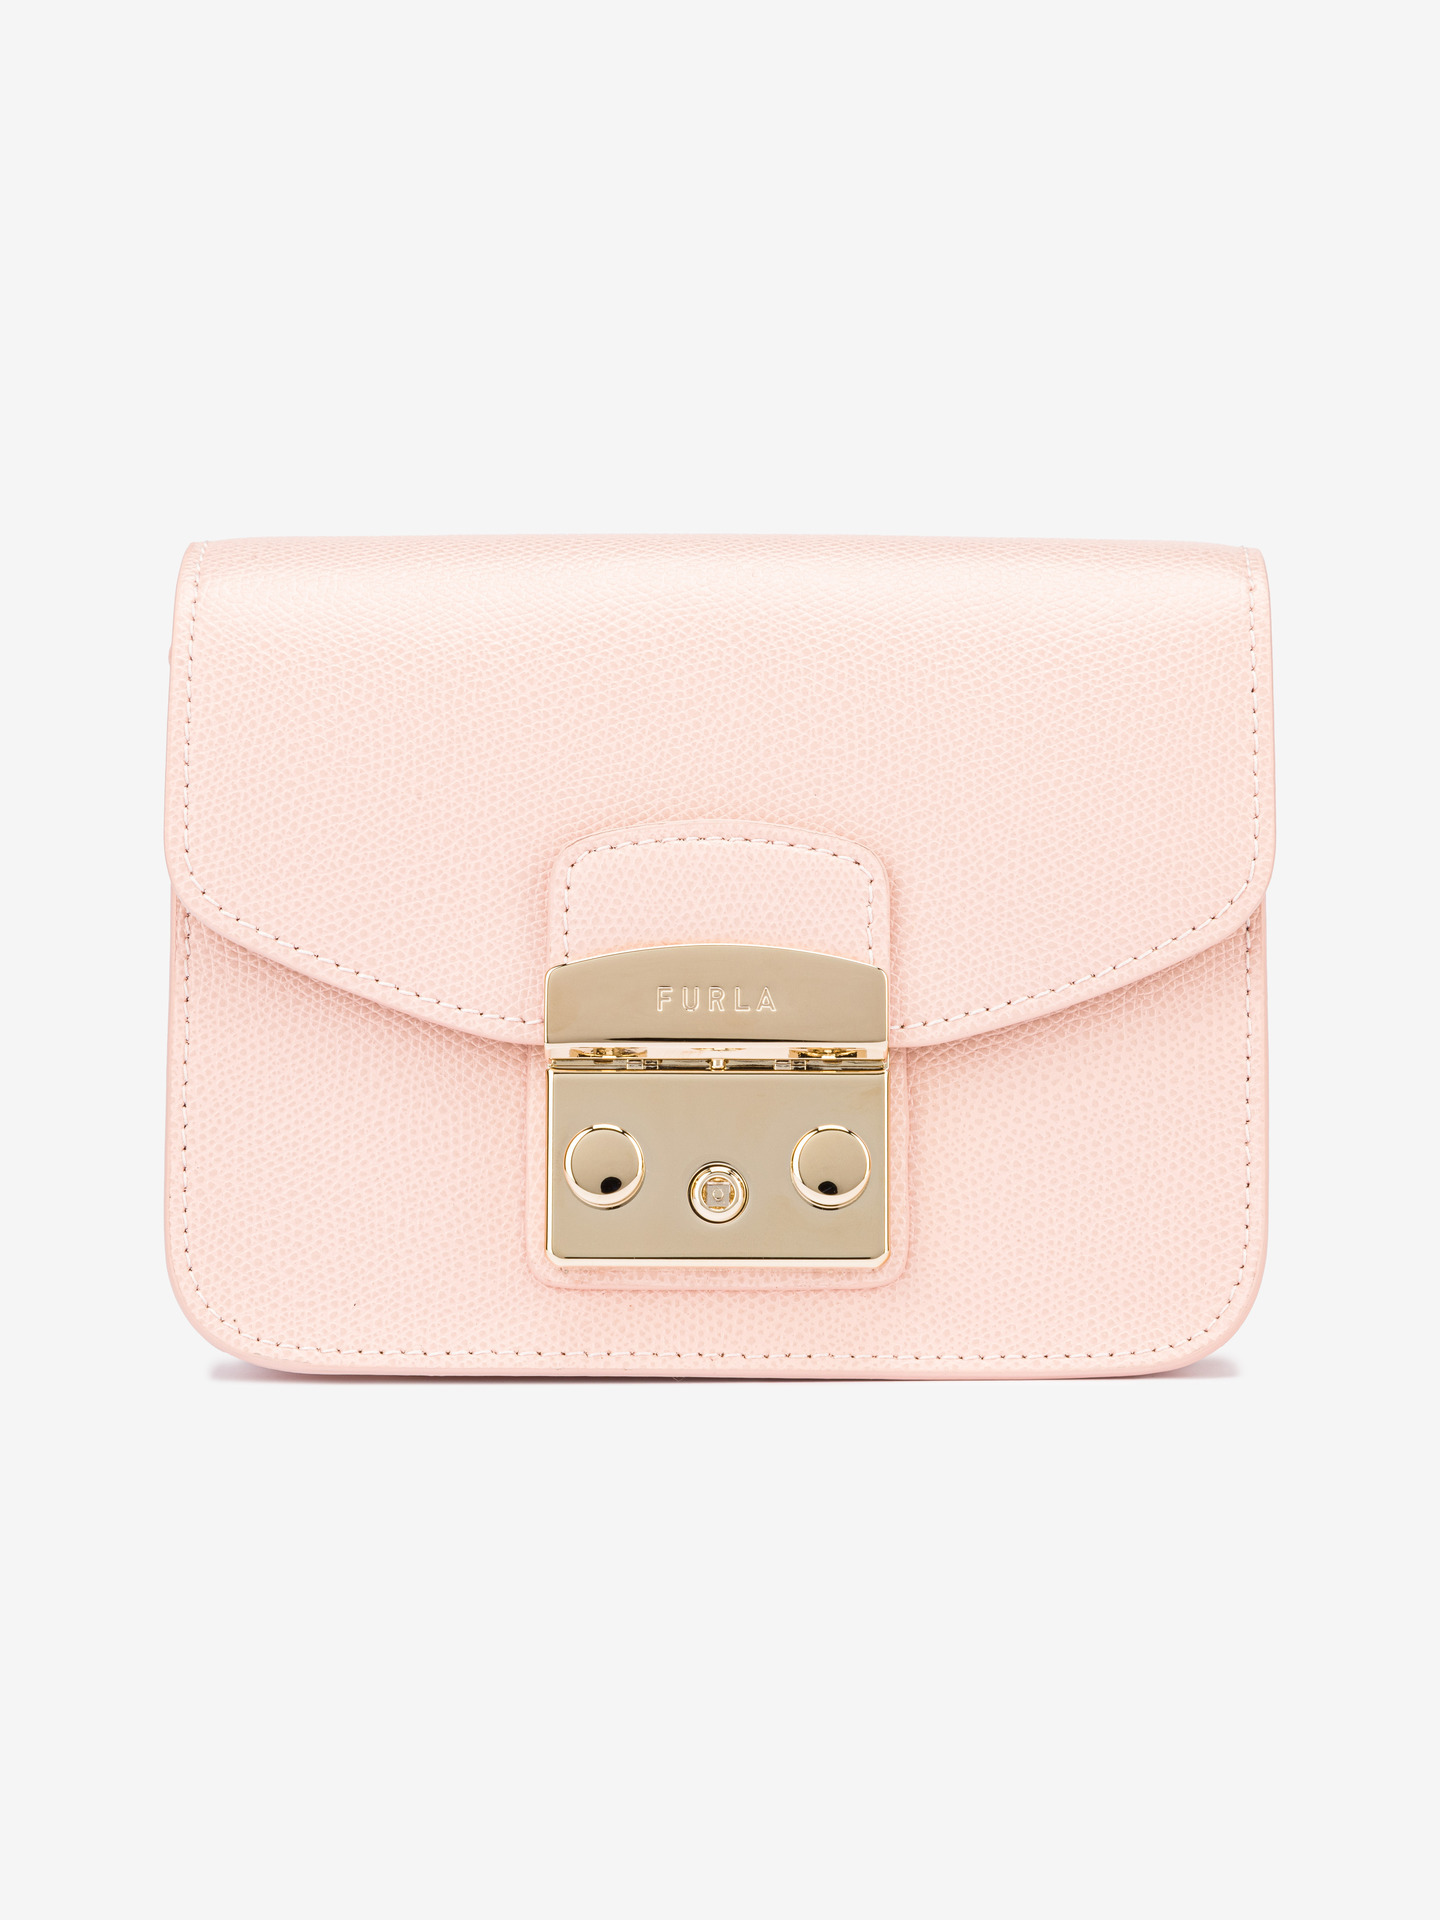 Metropolis Mini Cross body bag Furla Růžová